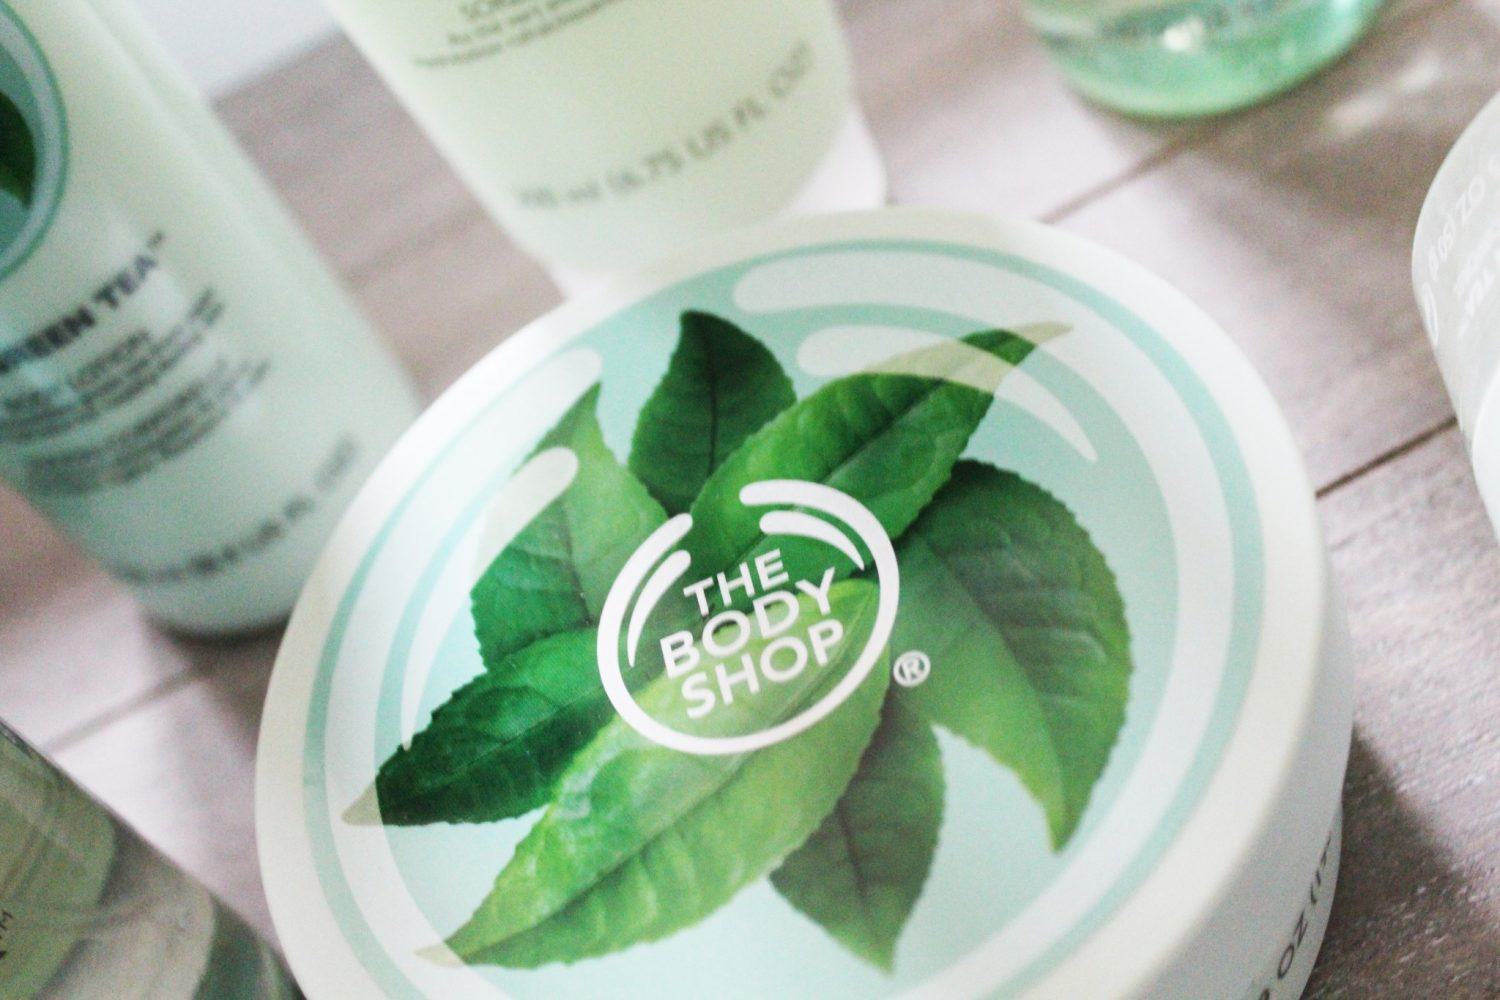 the body shop international sustainable This international entanglement of cosmetic companies might help reunite the  body shop with its sustainable origins this represents a new.